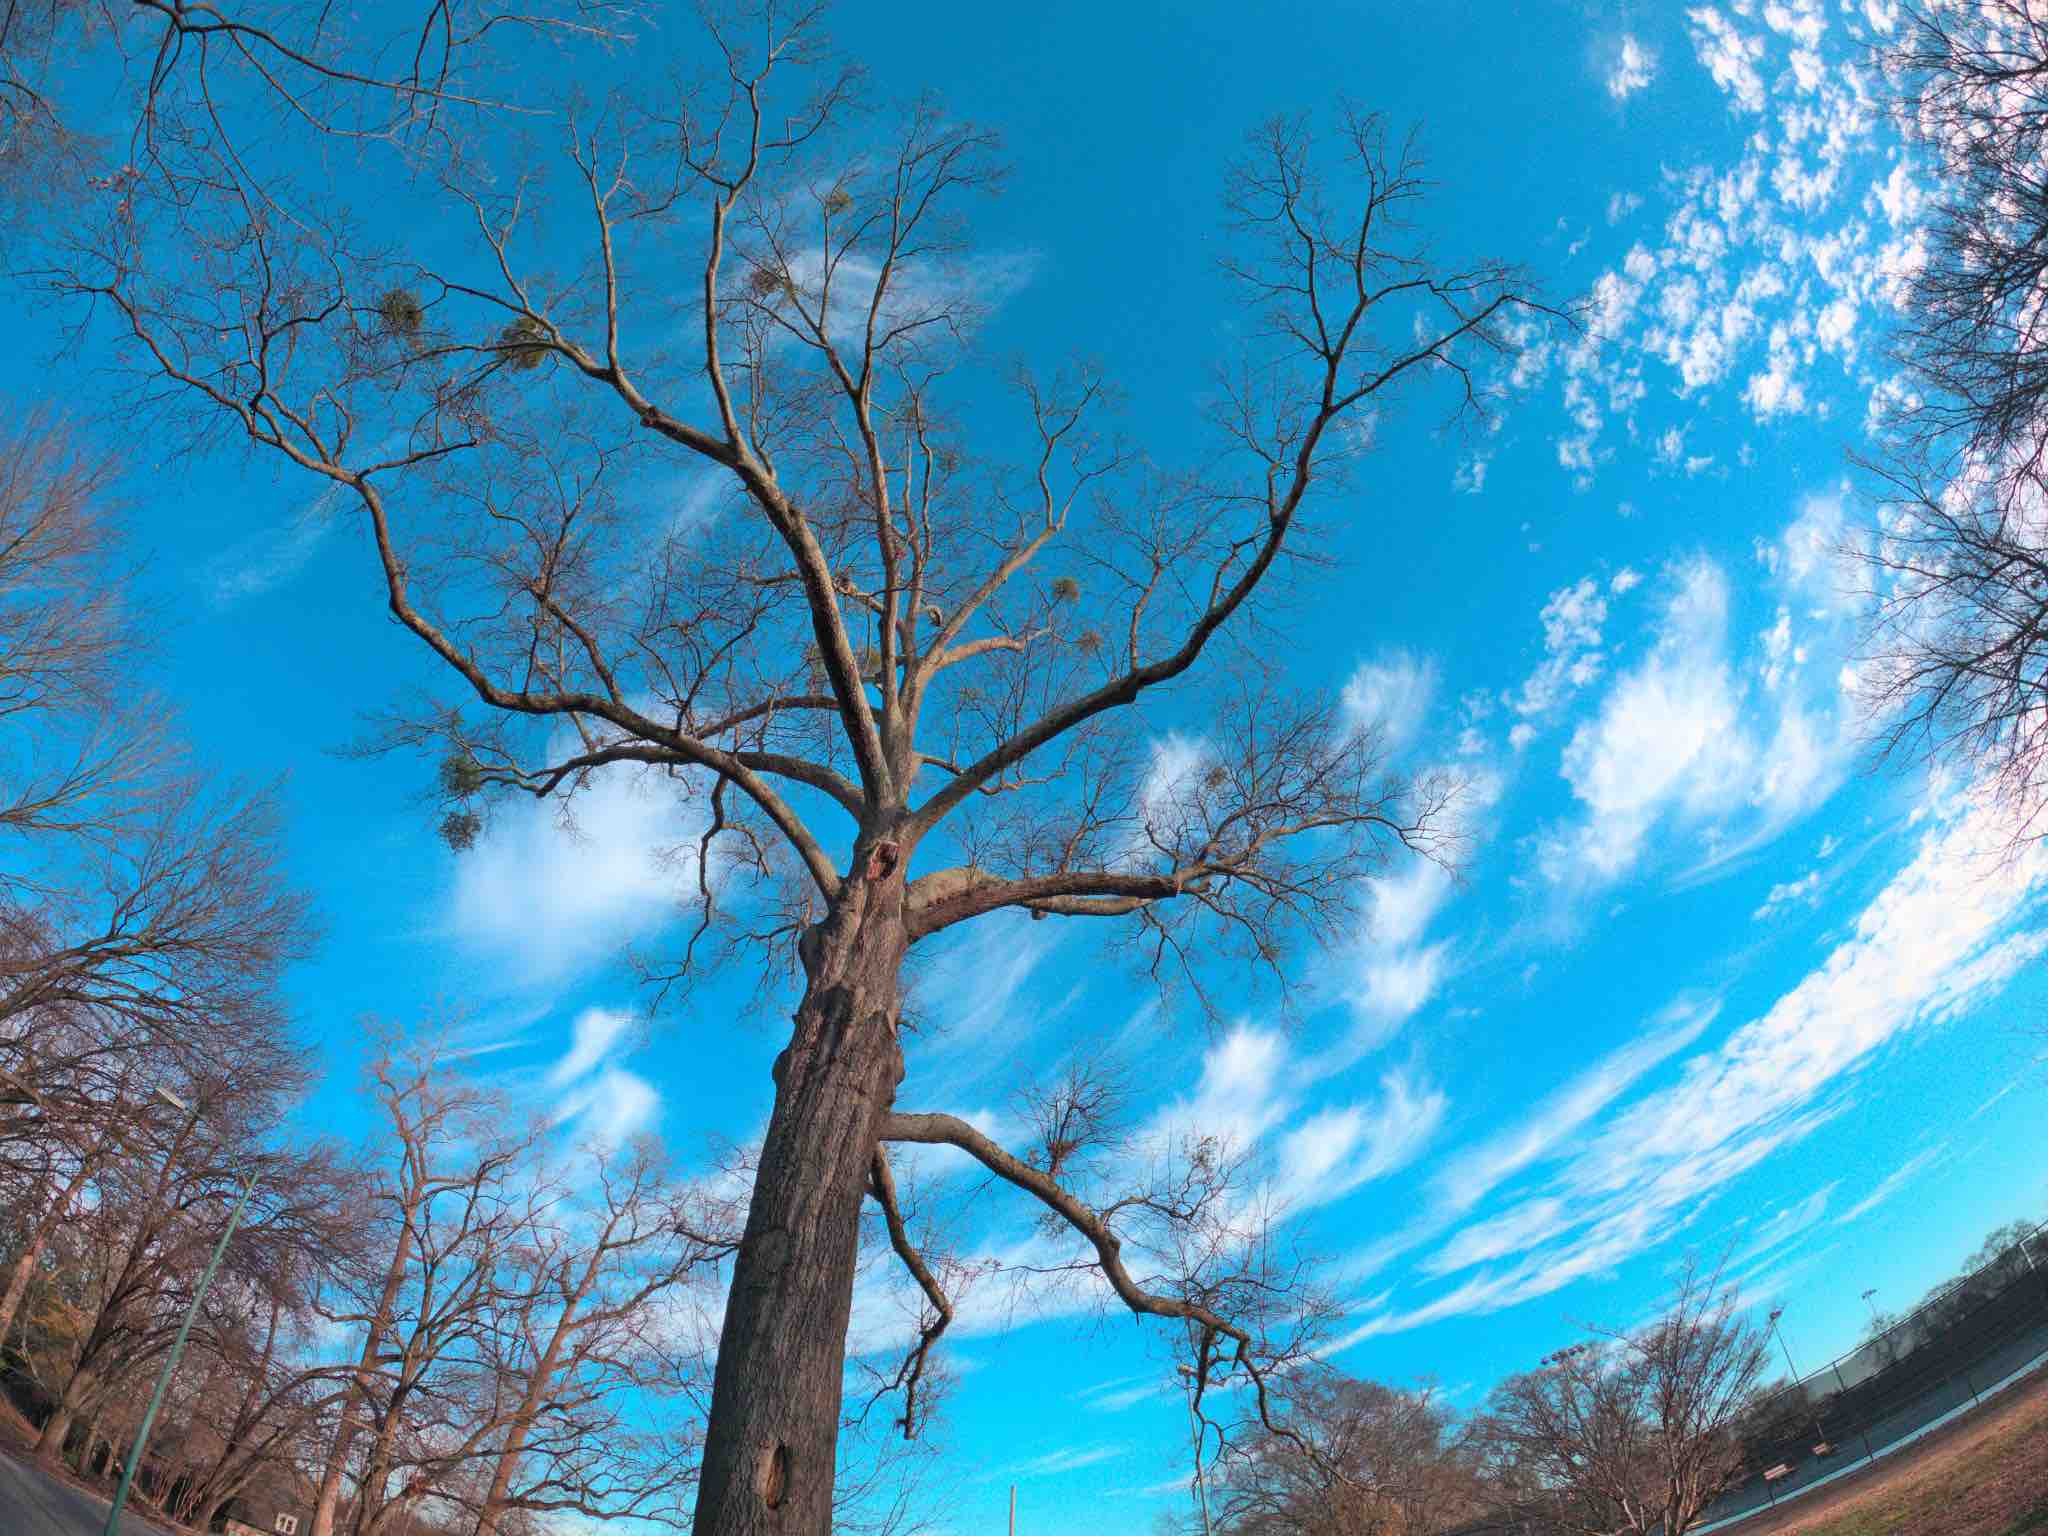 A photo of dormant treetop with a blue sky behind it. The photo was taken a few feet from the base of the tree and looks high up in the air.